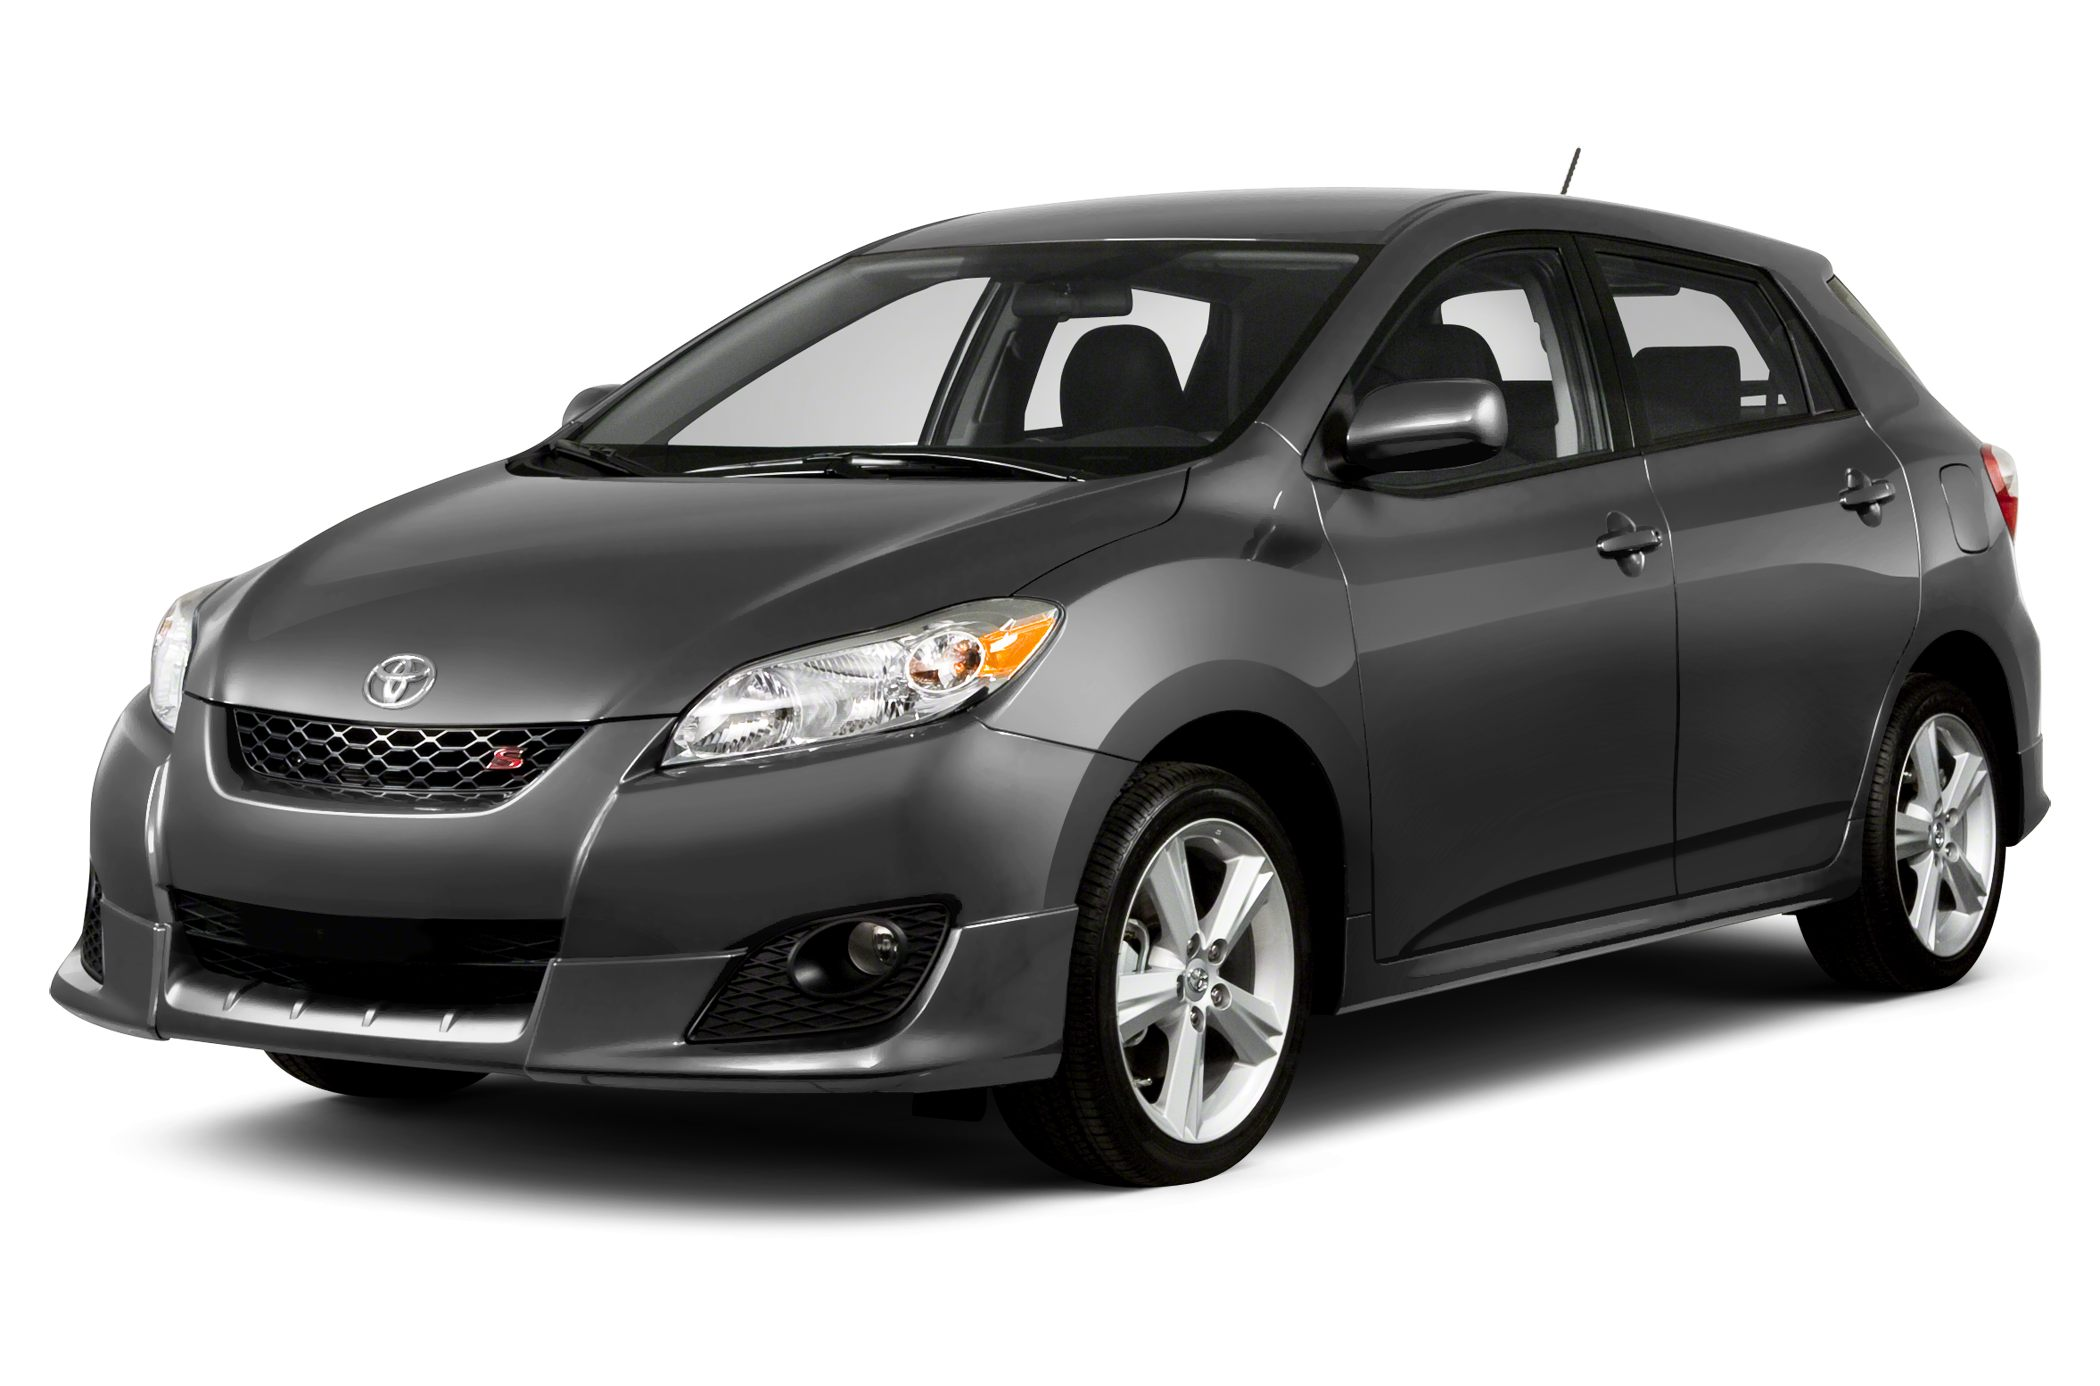 Toyota Matrix News, Photos and Buying Information - Autoblog